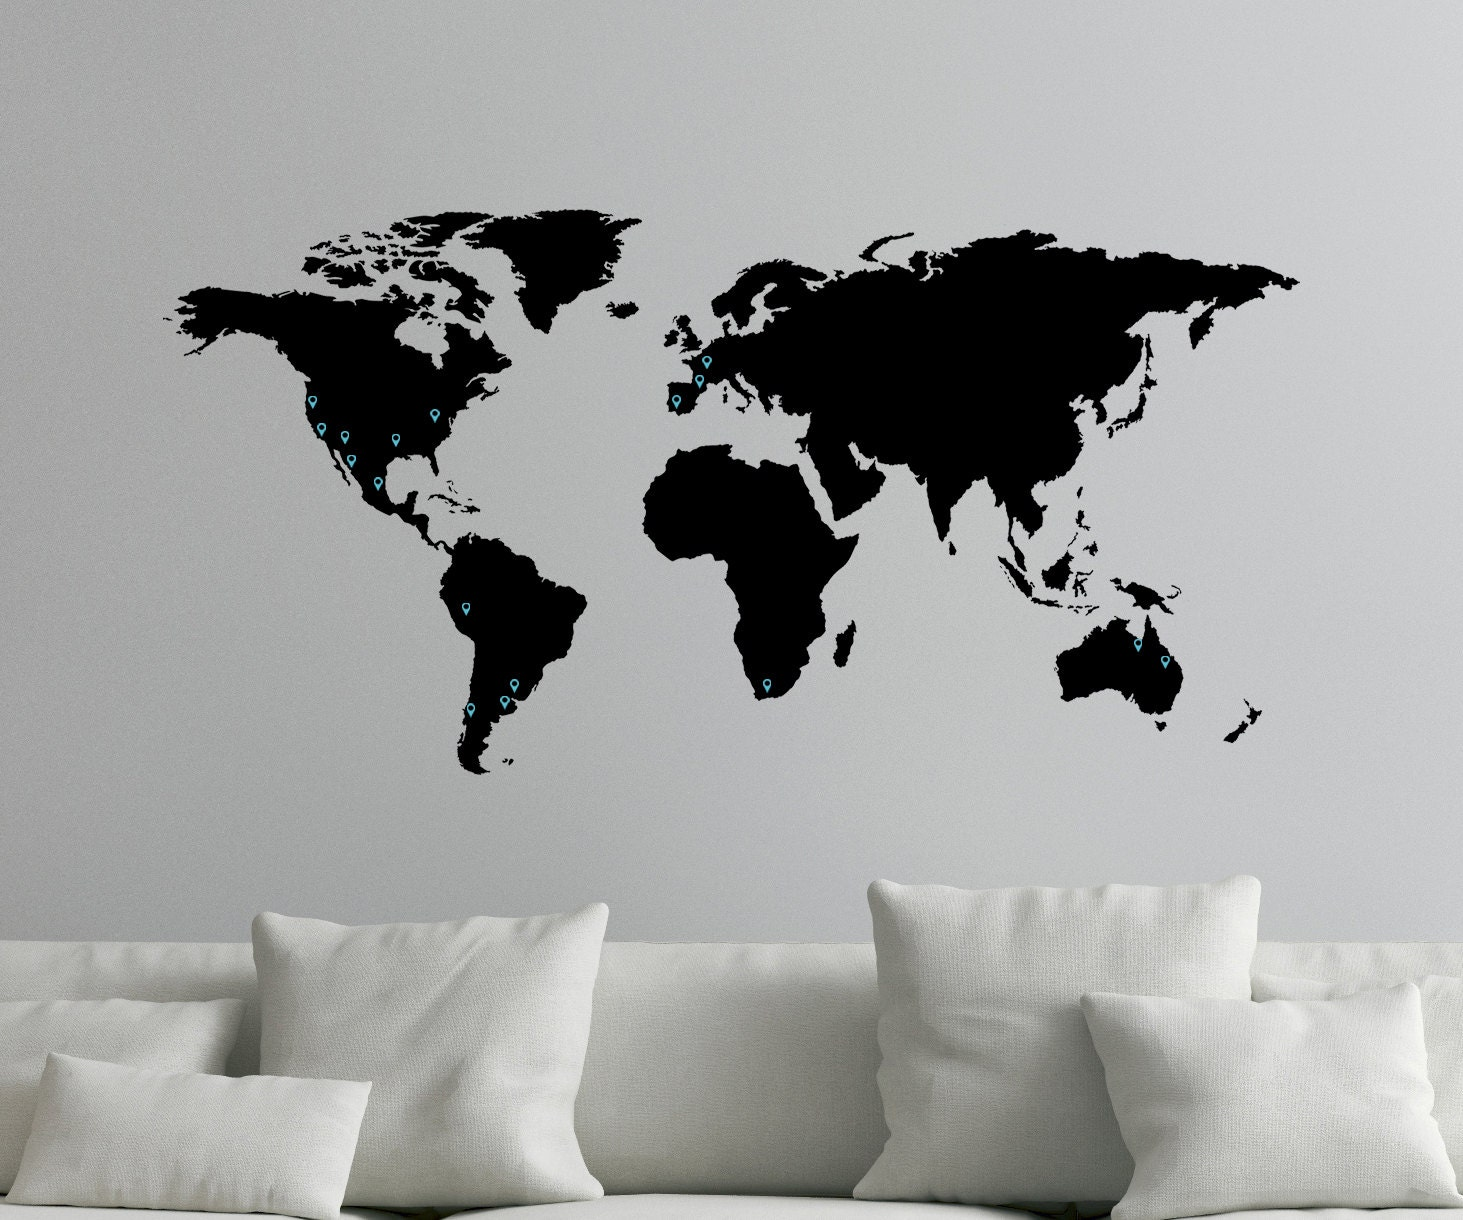 World Map Decal For Wall With Map Markers 0050 Etsy